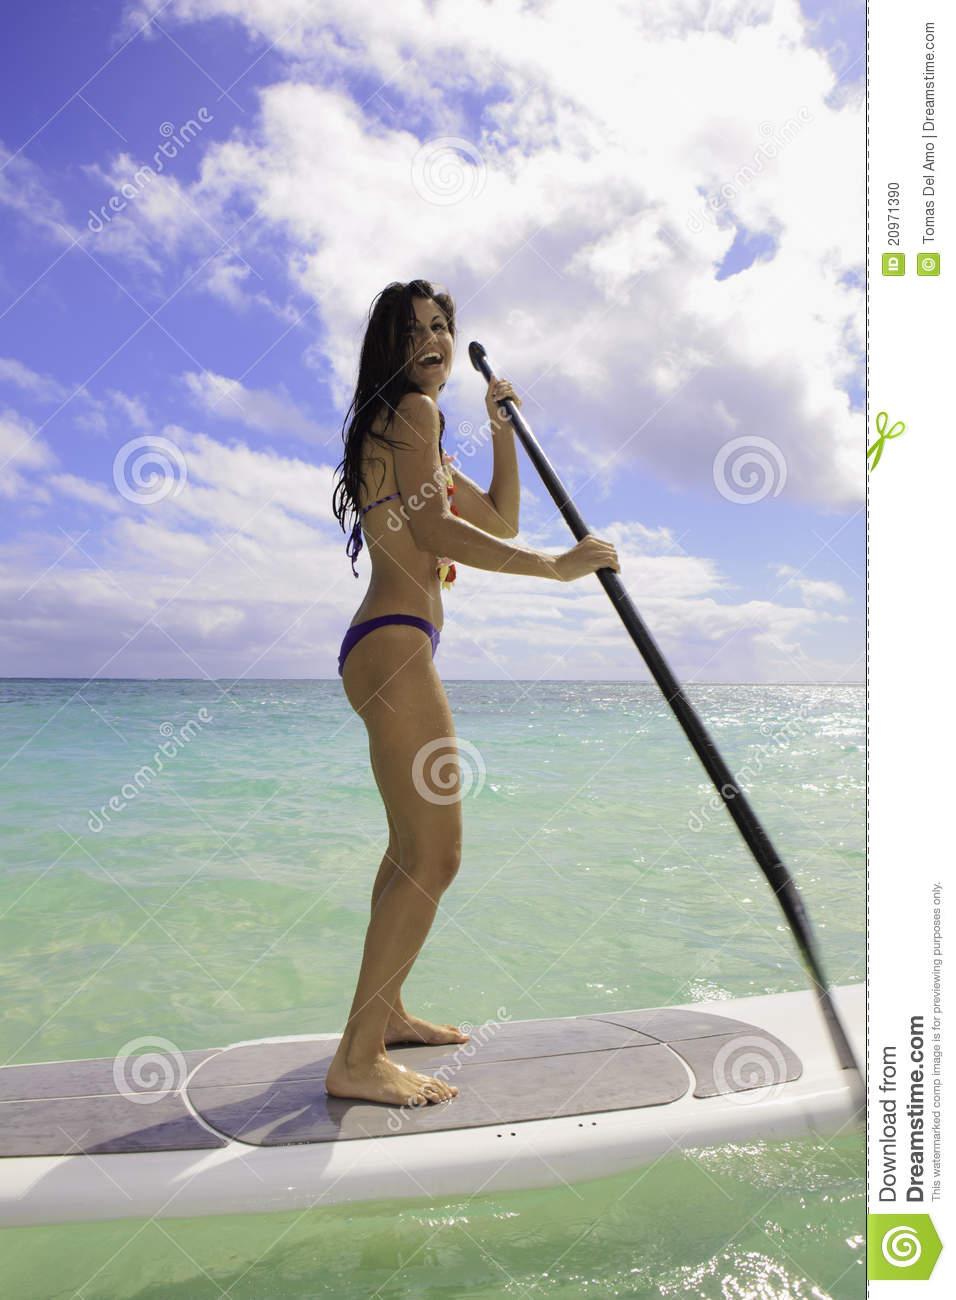 Girl On A Stand Up Paddle Board Stock Photo - Image: 20971390